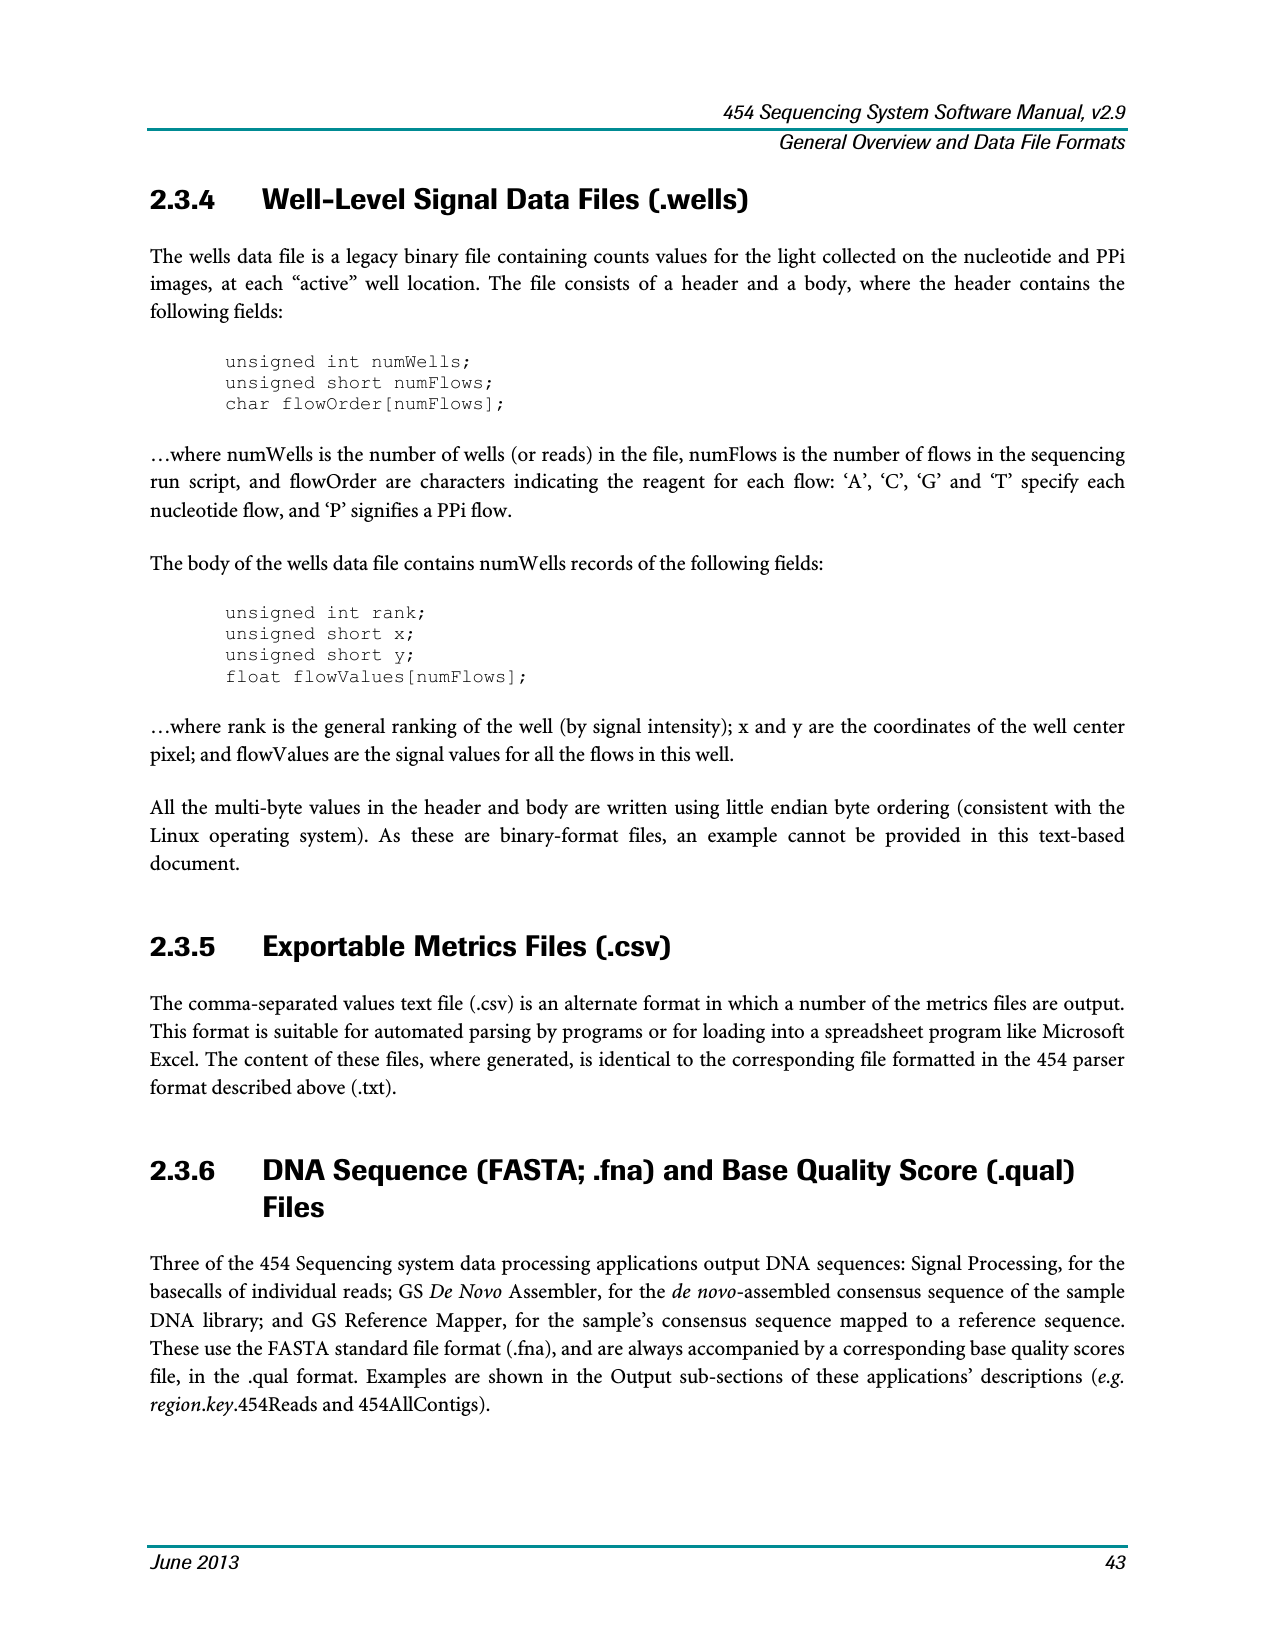 USM-00058.09_454SeqSys_SWManual-v2.9_Overview-43.png